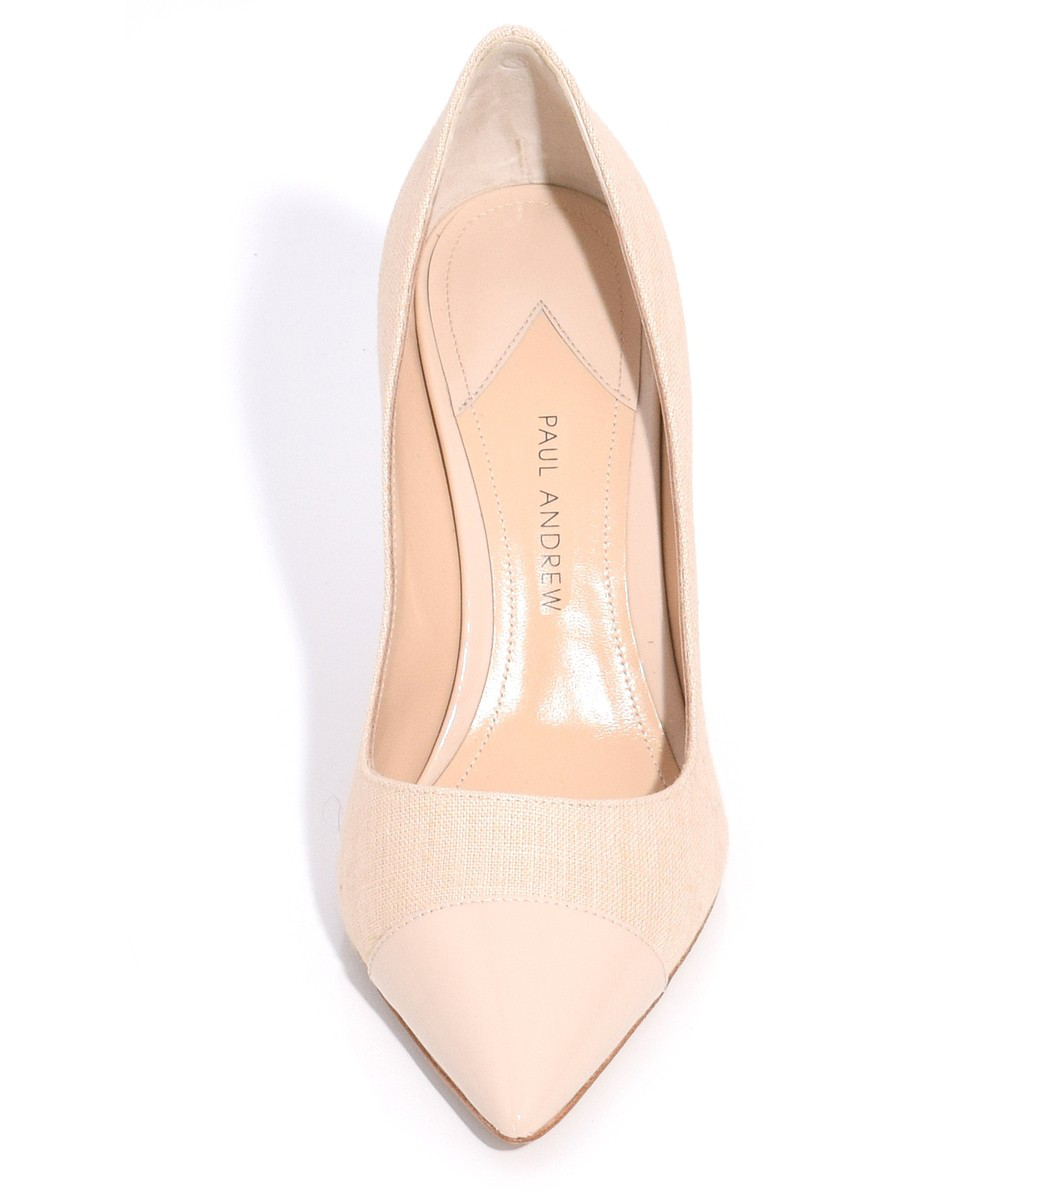 06ea827d934 Paul Andrew Pump It Up Pumps In Sandstone Multi